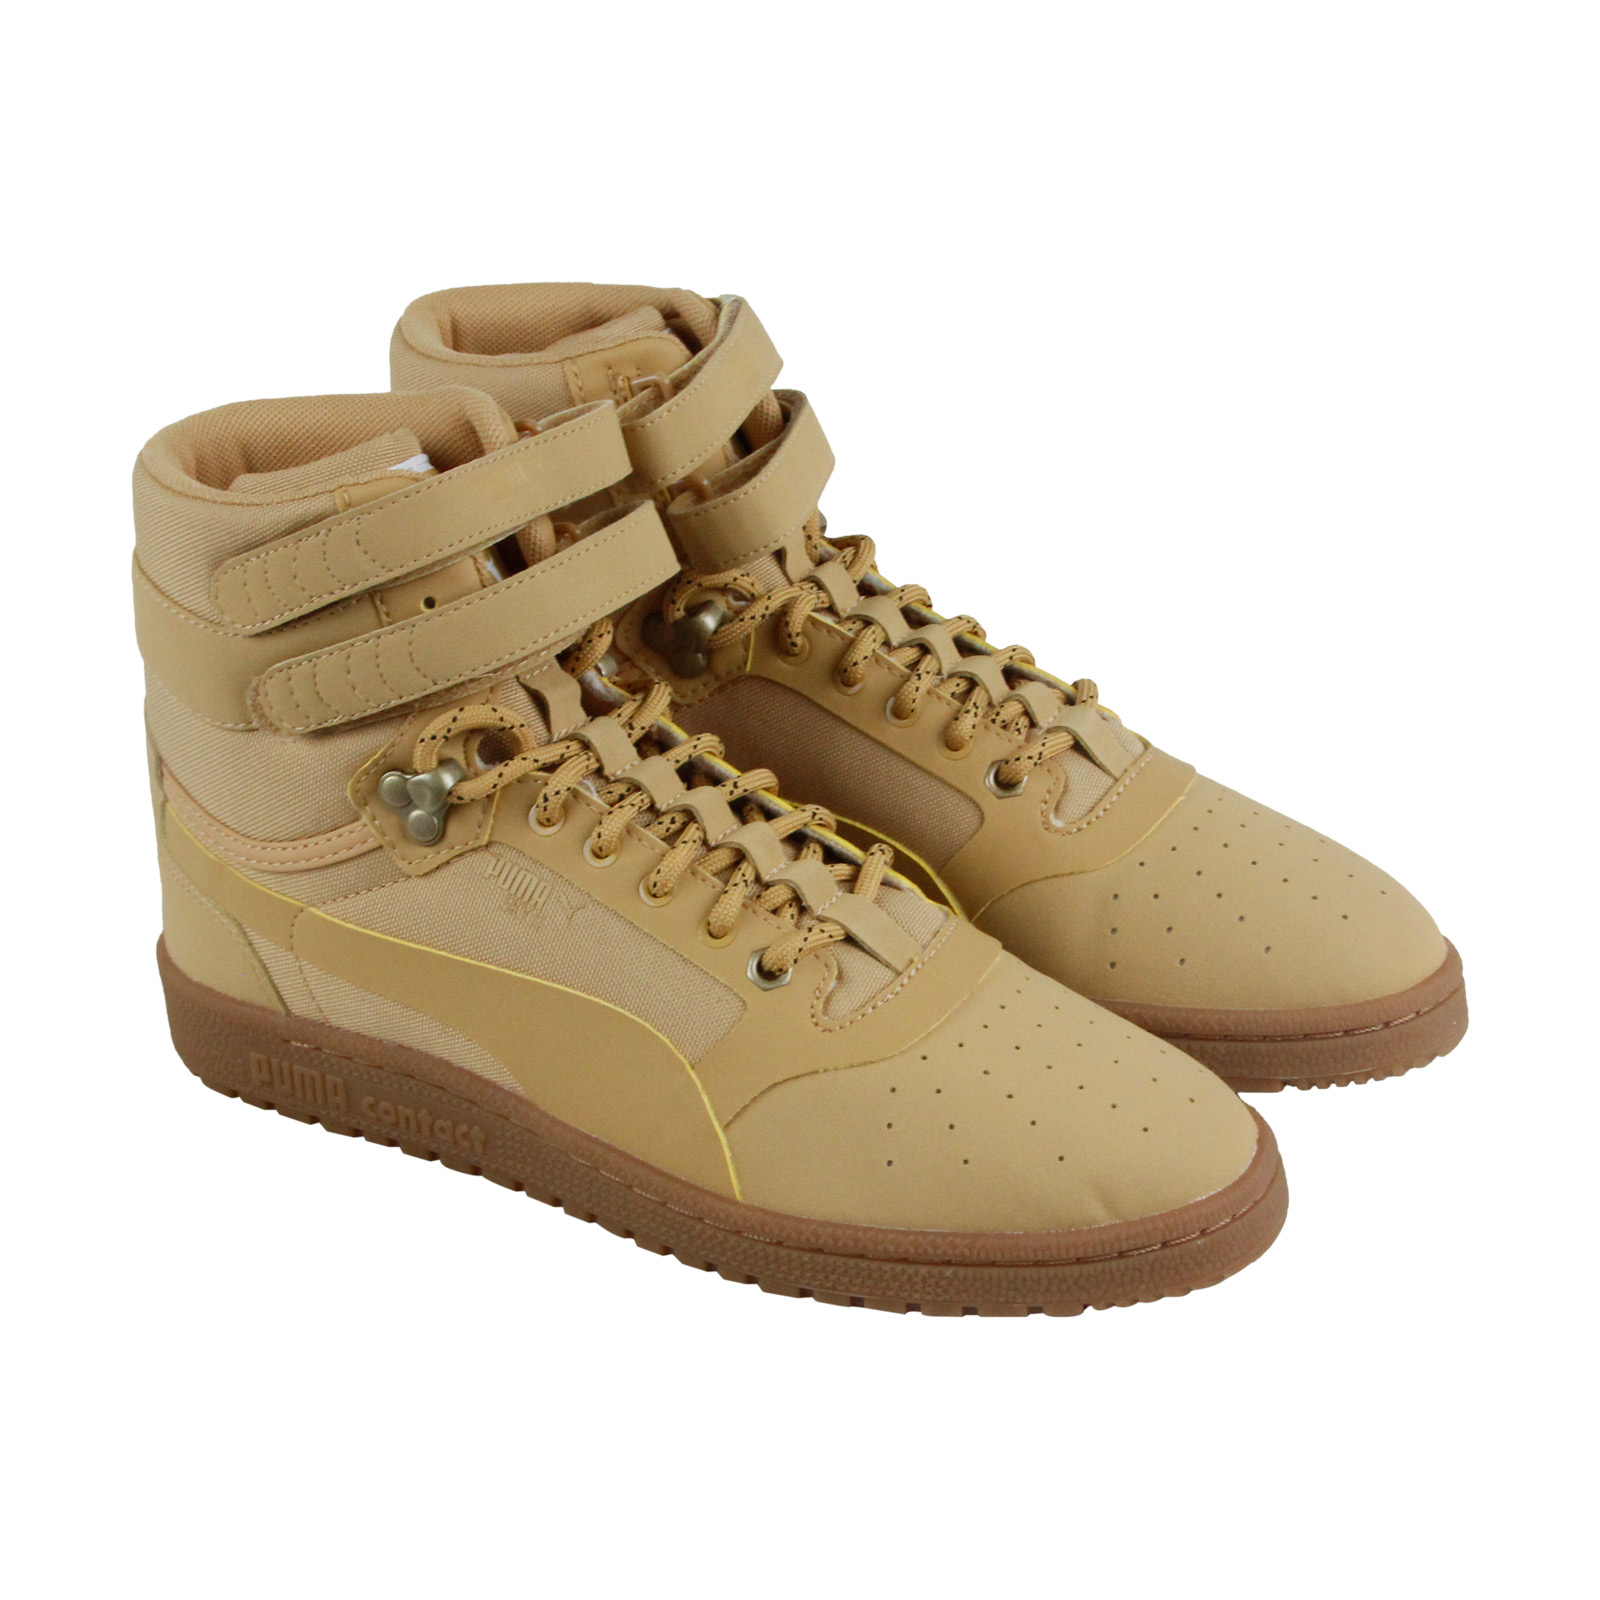 Puma Sky Ii Hi Mens Tan Leather High Top Lace Up Sneakers Shoes 8